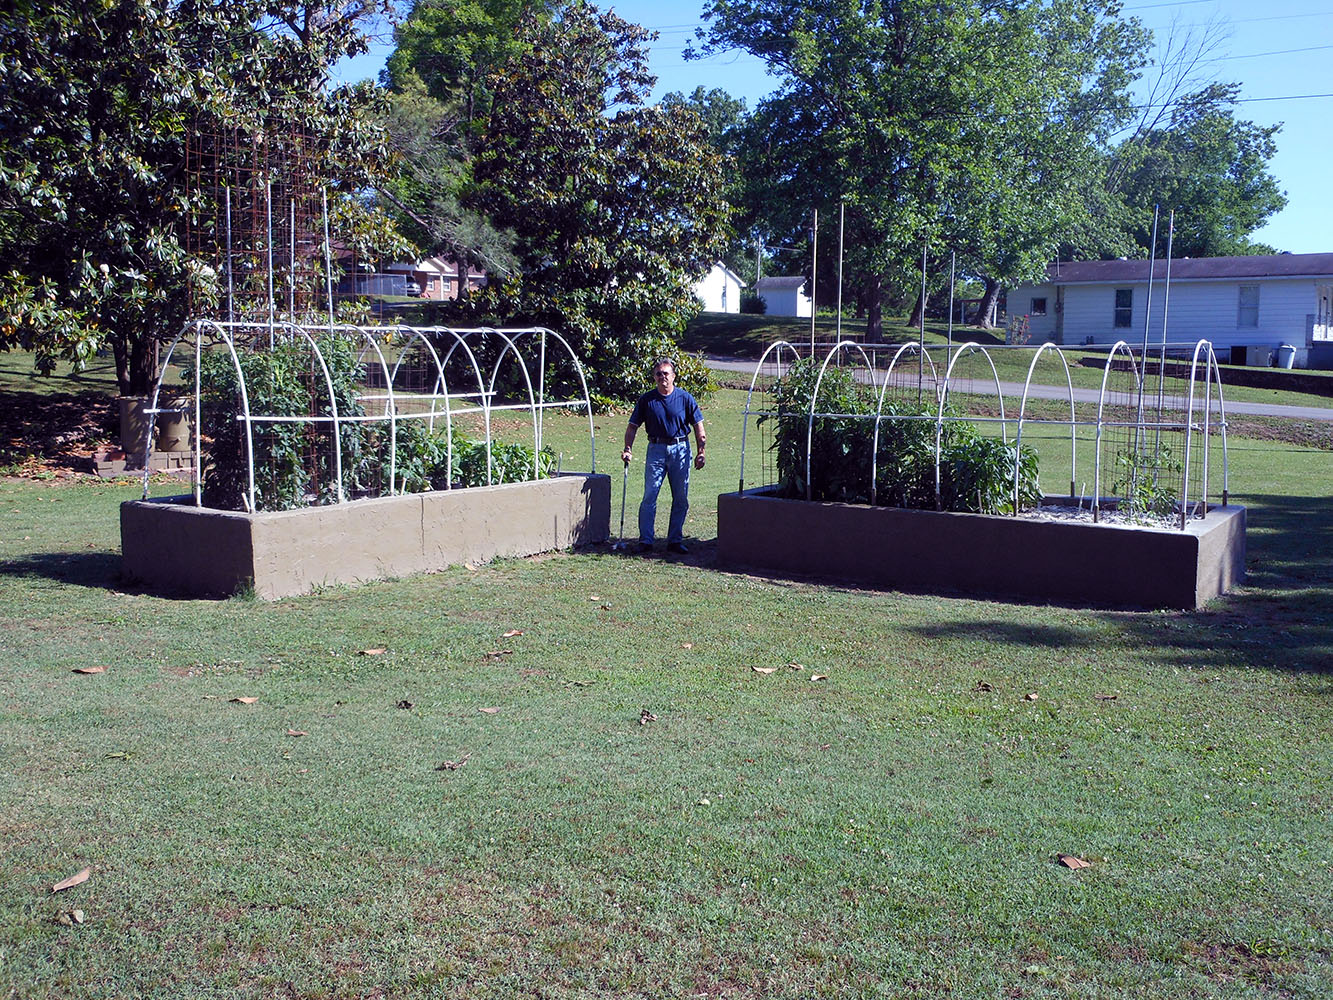 05-21-2015 Both Gardens with New Cages 01